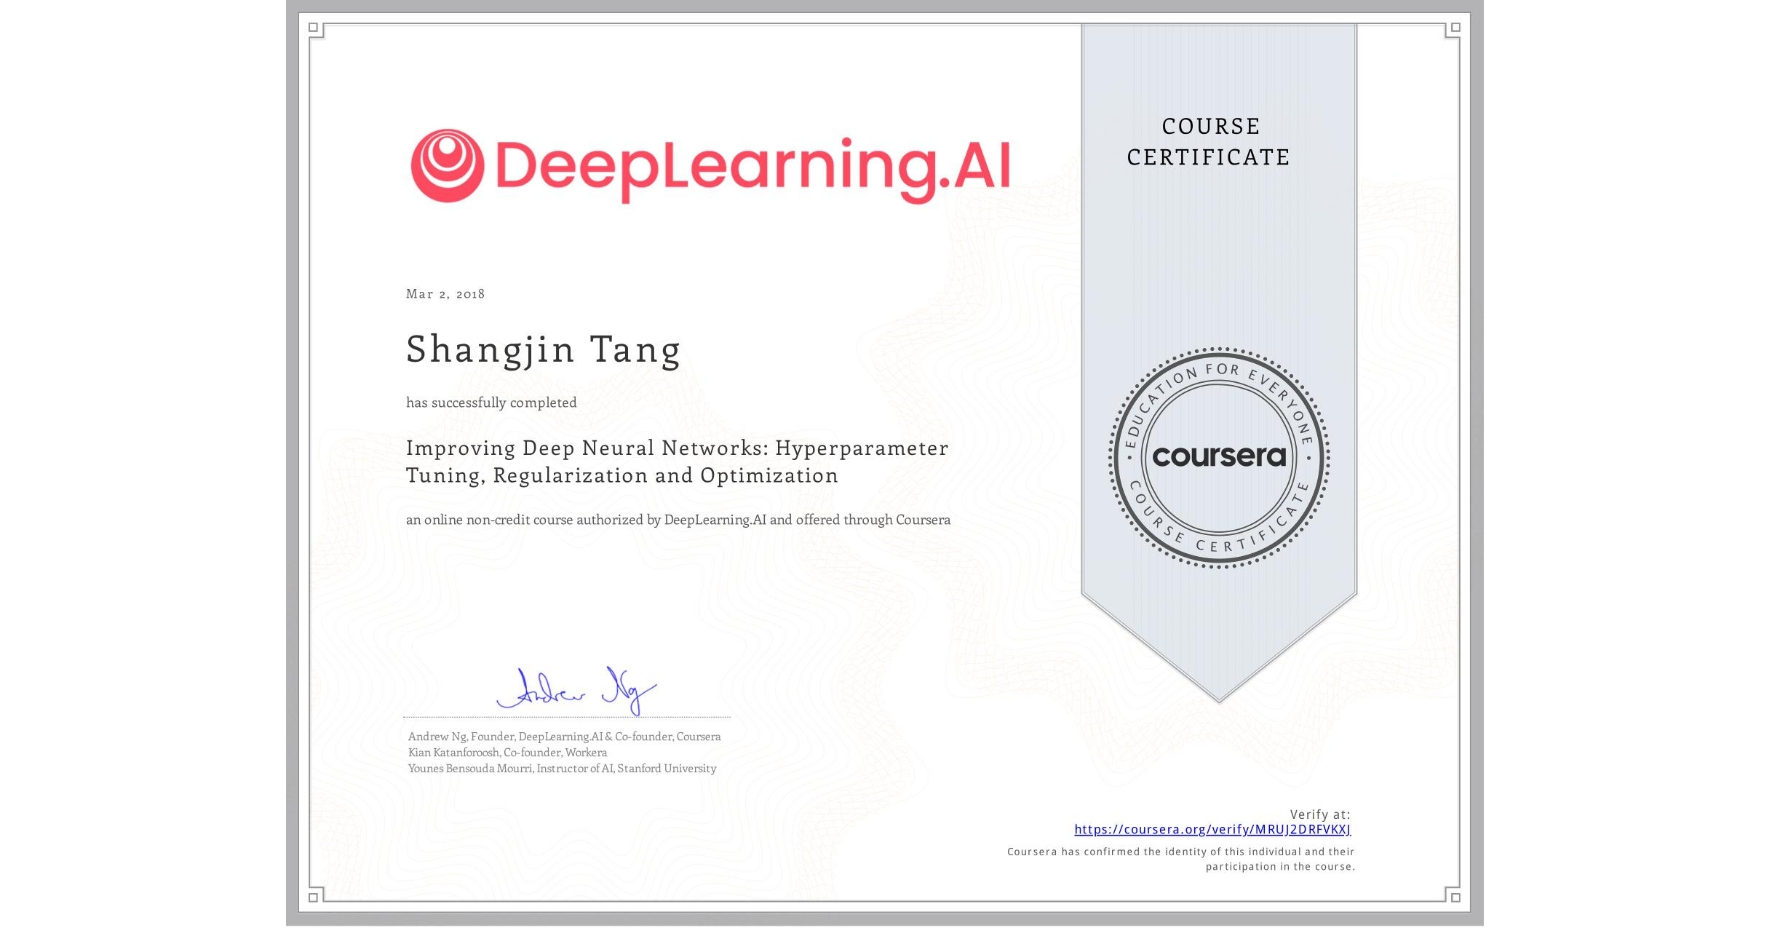 View certificate for Shangjin Tang, Improving Deep Neural Networks: Hyperparameter Tuning, Regularization and Optimization, an online non-credit course authorized by DeepLearning.AI and offered through Coursera